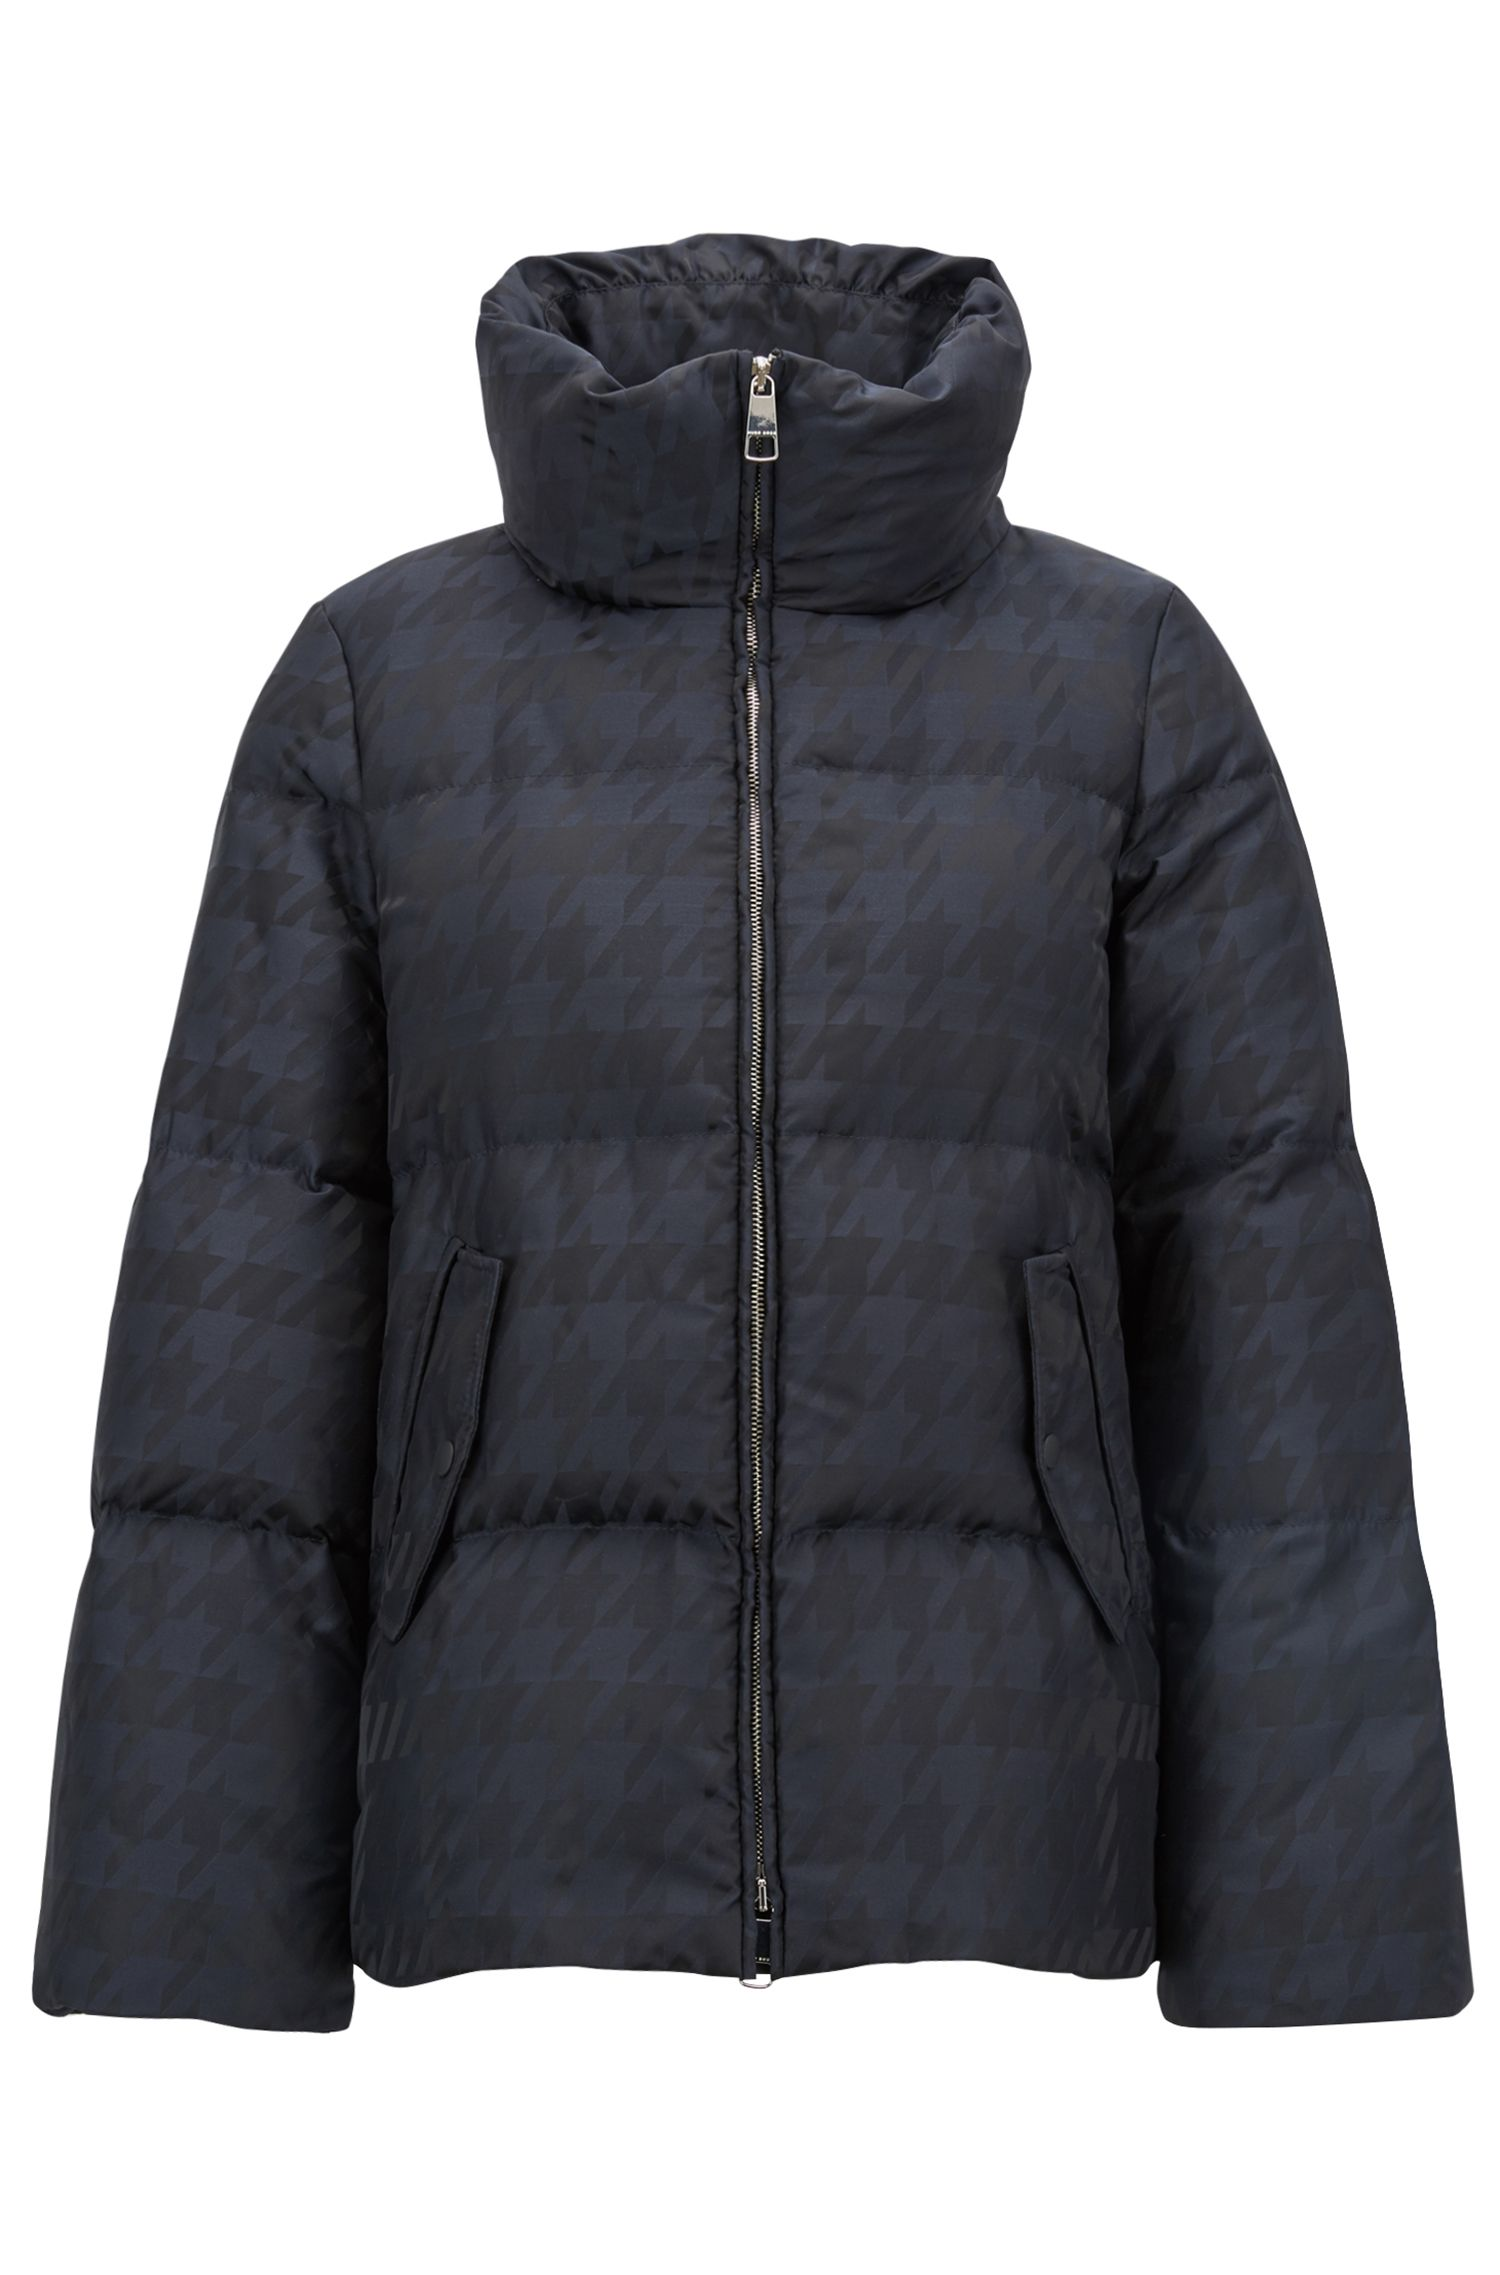 Down jacket in water-repellent houndstooth jacquard, Patterned